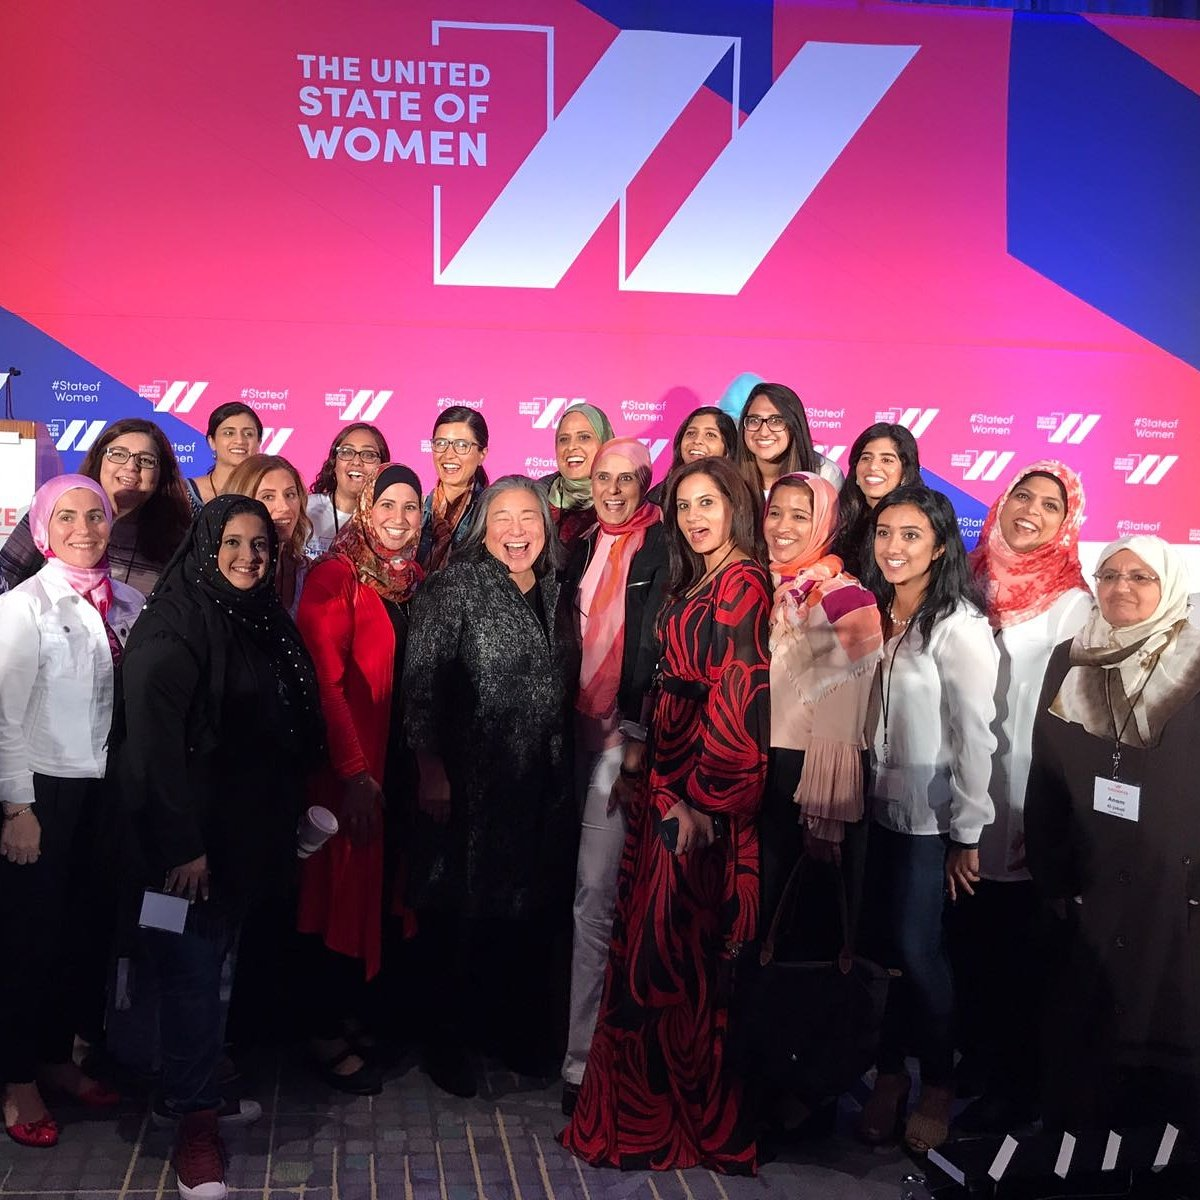 Here are your Muslim women leaders ready to make change happen. We are United #StateofWomen. #GalvanizeChicago